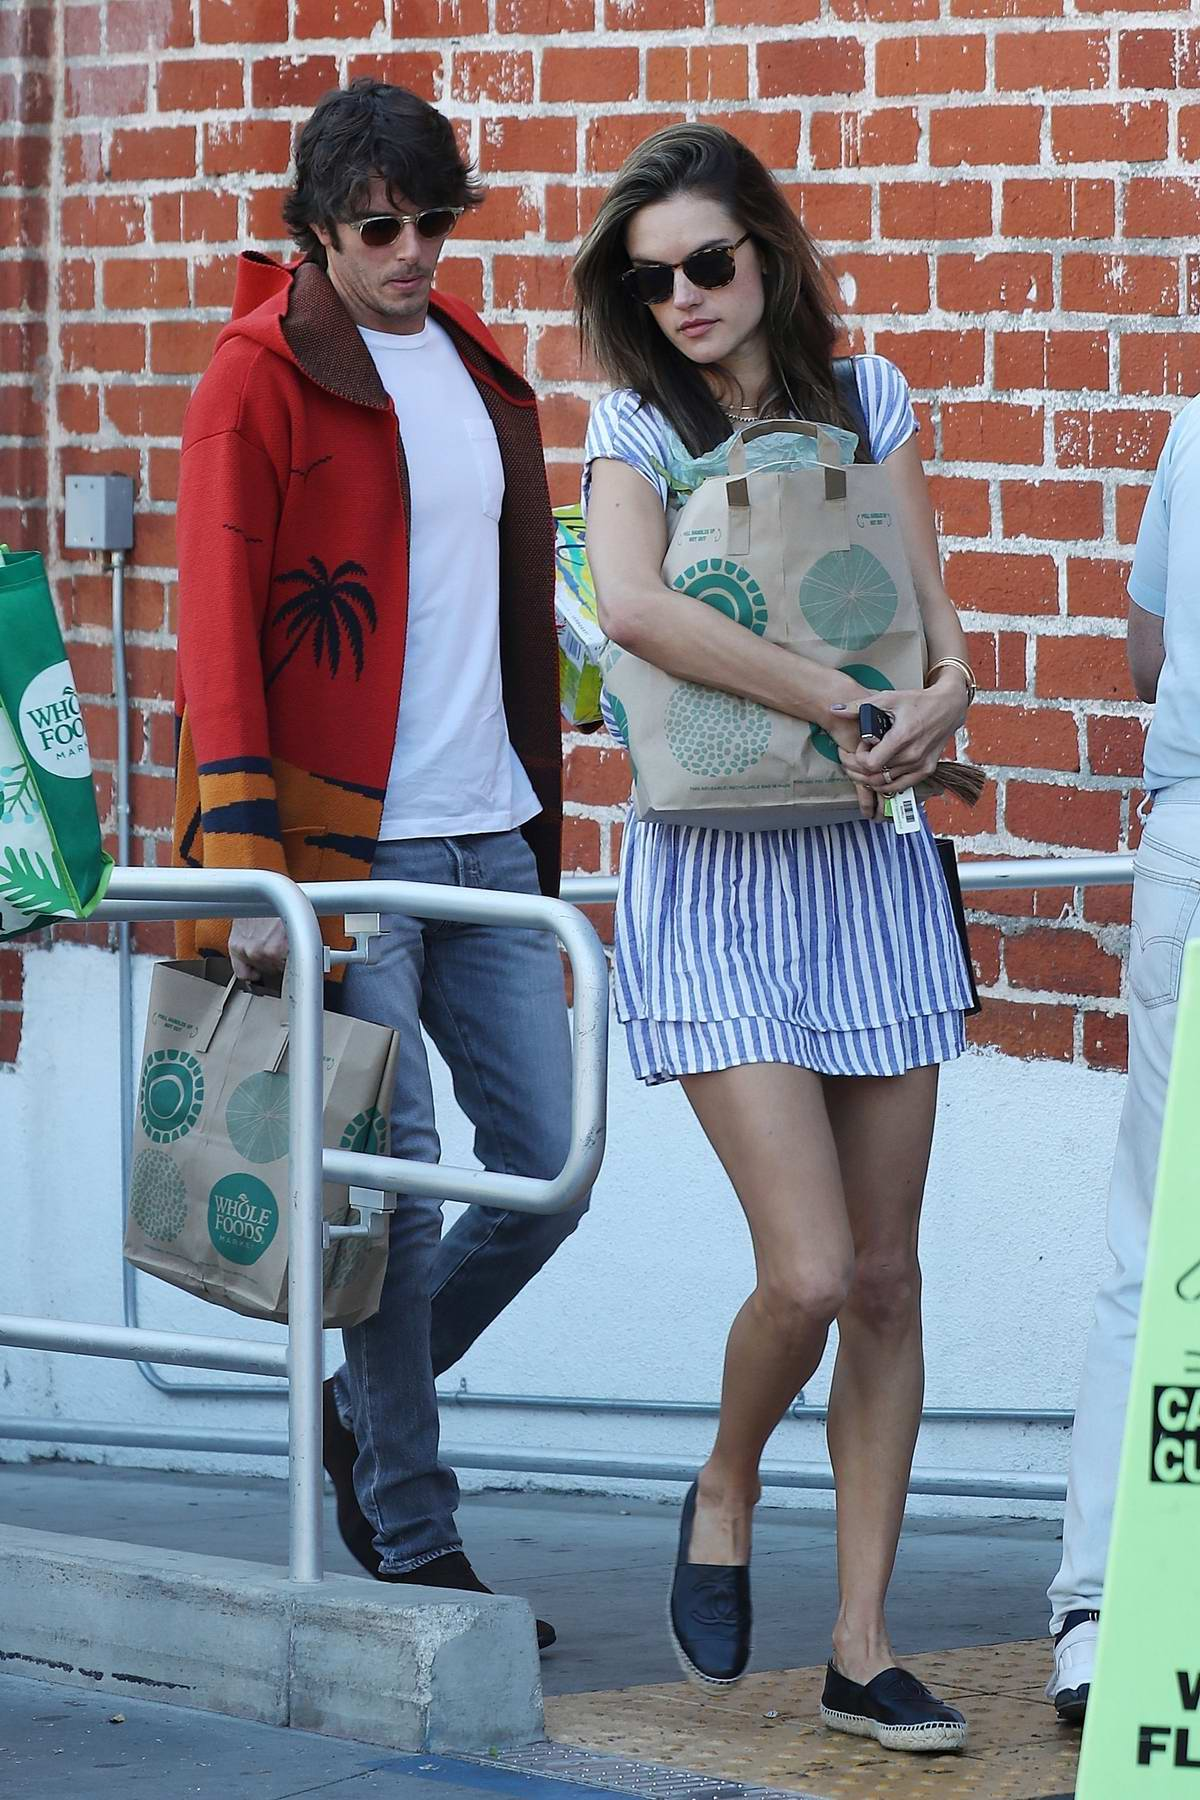 Alessandra Ambrosio looks lovely in a striped short dress while out with boyfriend Nicolo Oddi for some grocery shopping at Whole Foods in Santa Monica, California